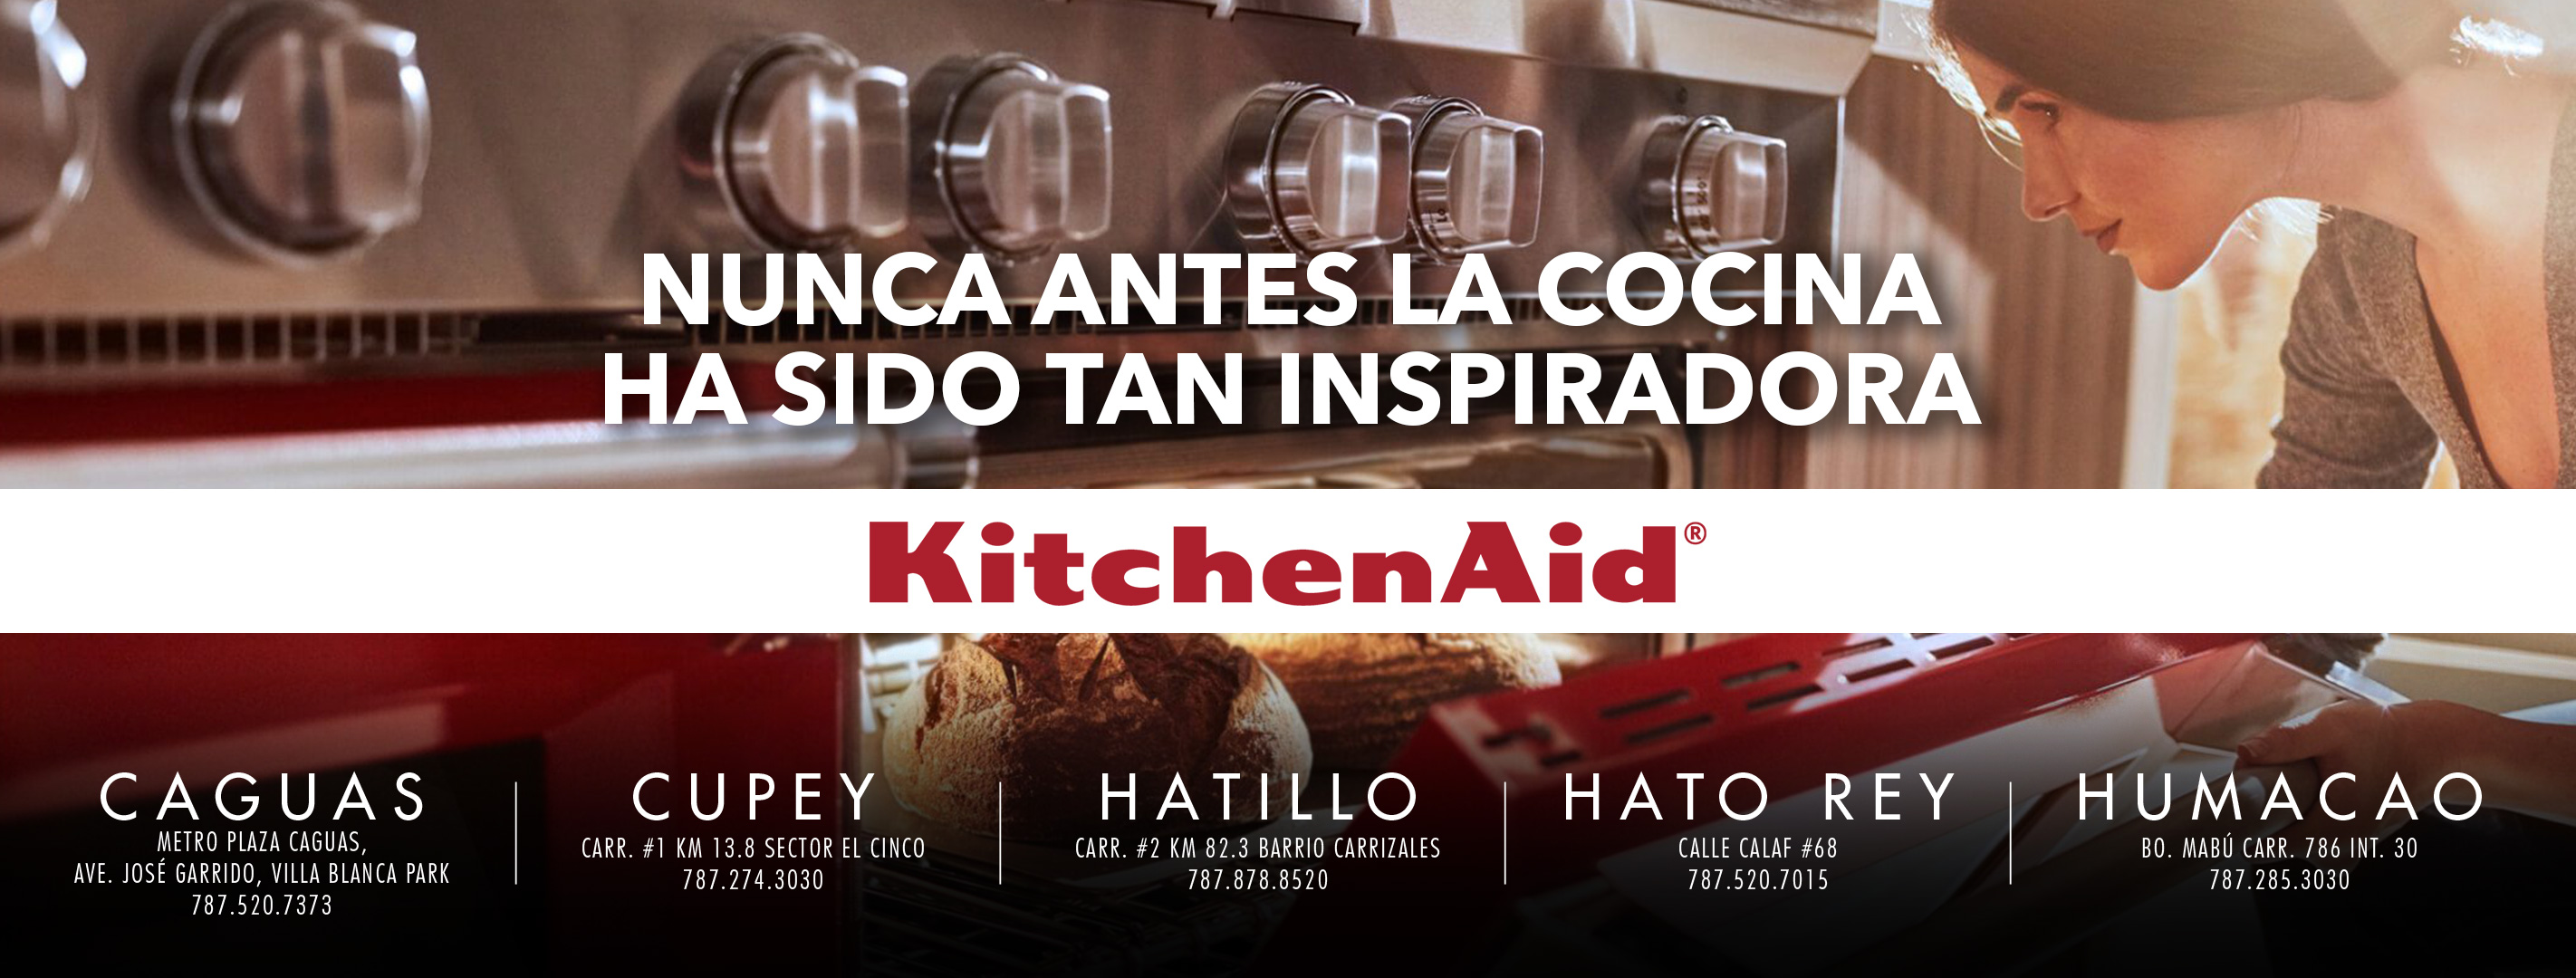 banners-kitchenaid-3.jpg